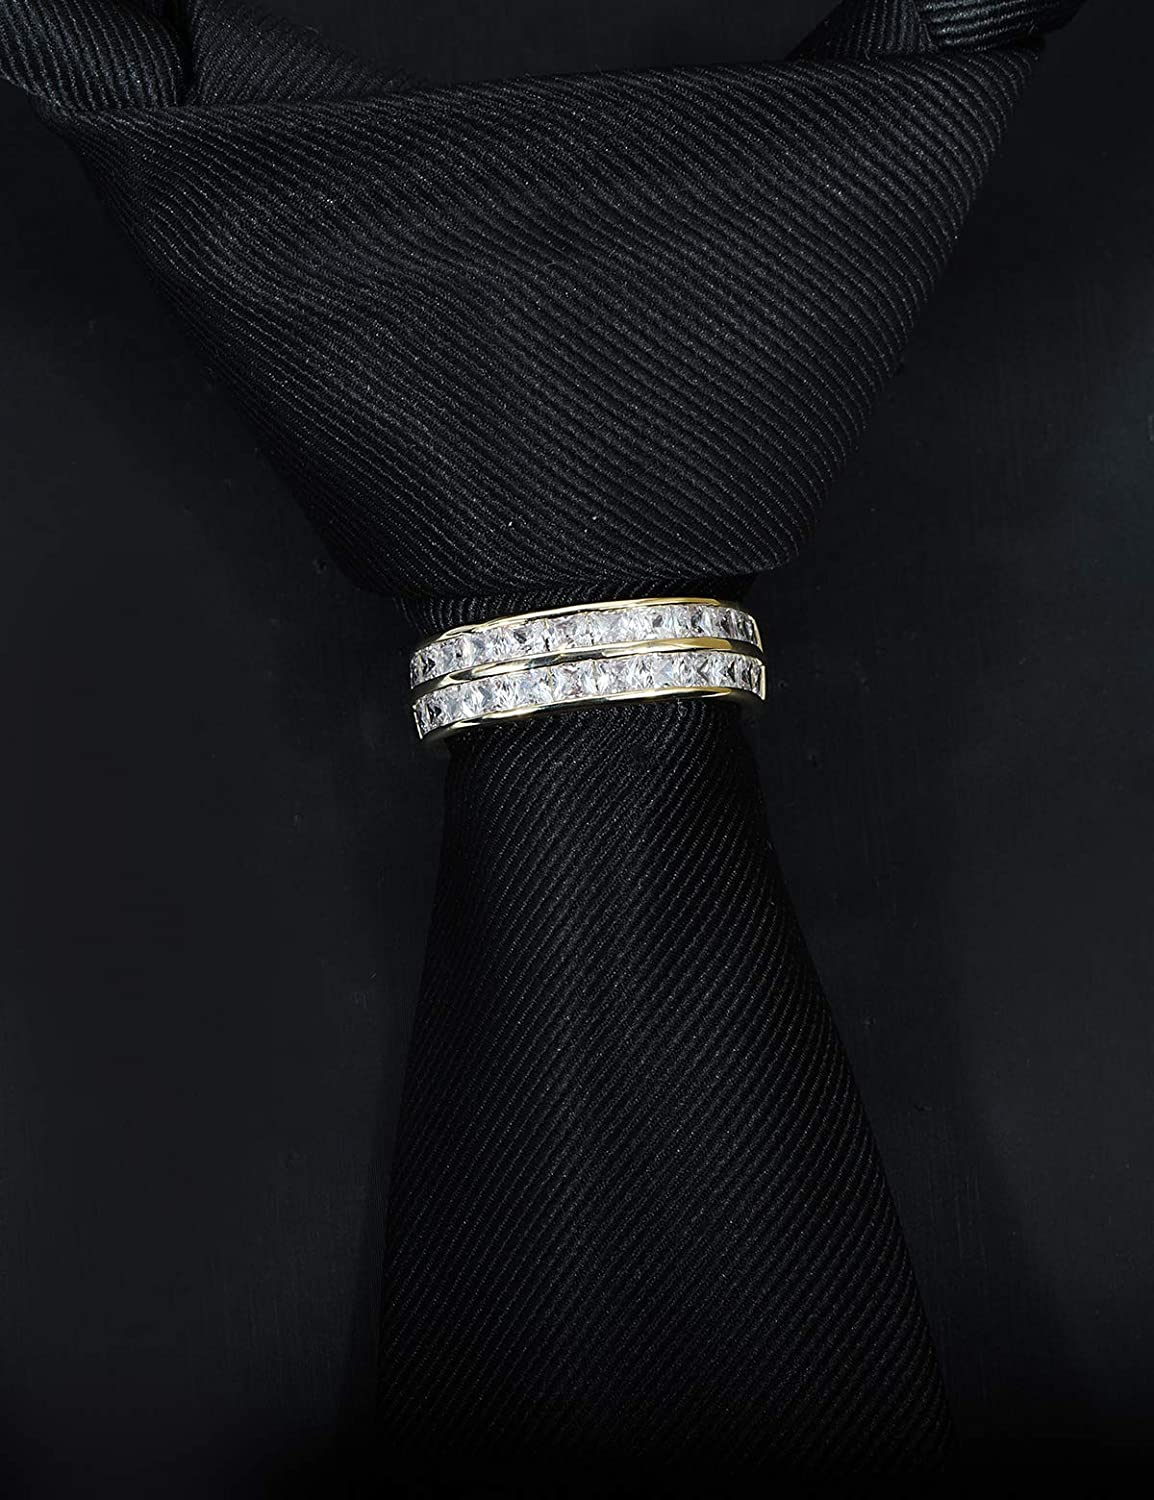 VVCome Men's Classic Square Cubic Zirconia Tie Clips Tie Holder Crystal Necktie Ring Tie Tacks Accessories for Wedding Business with Gift Box